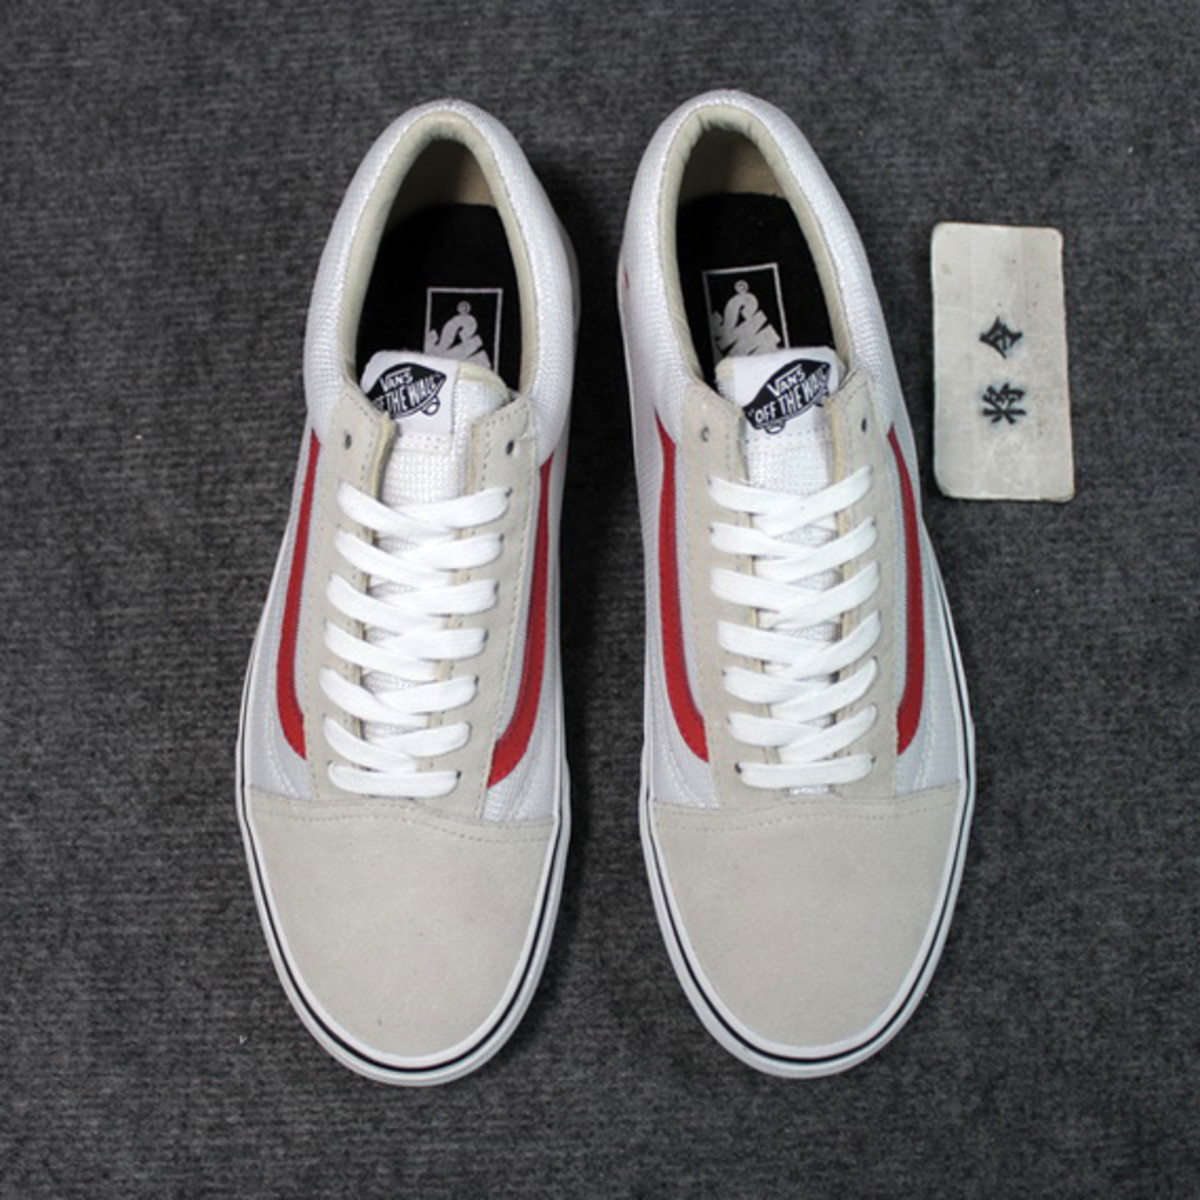 supreme-vans-old-skool-02